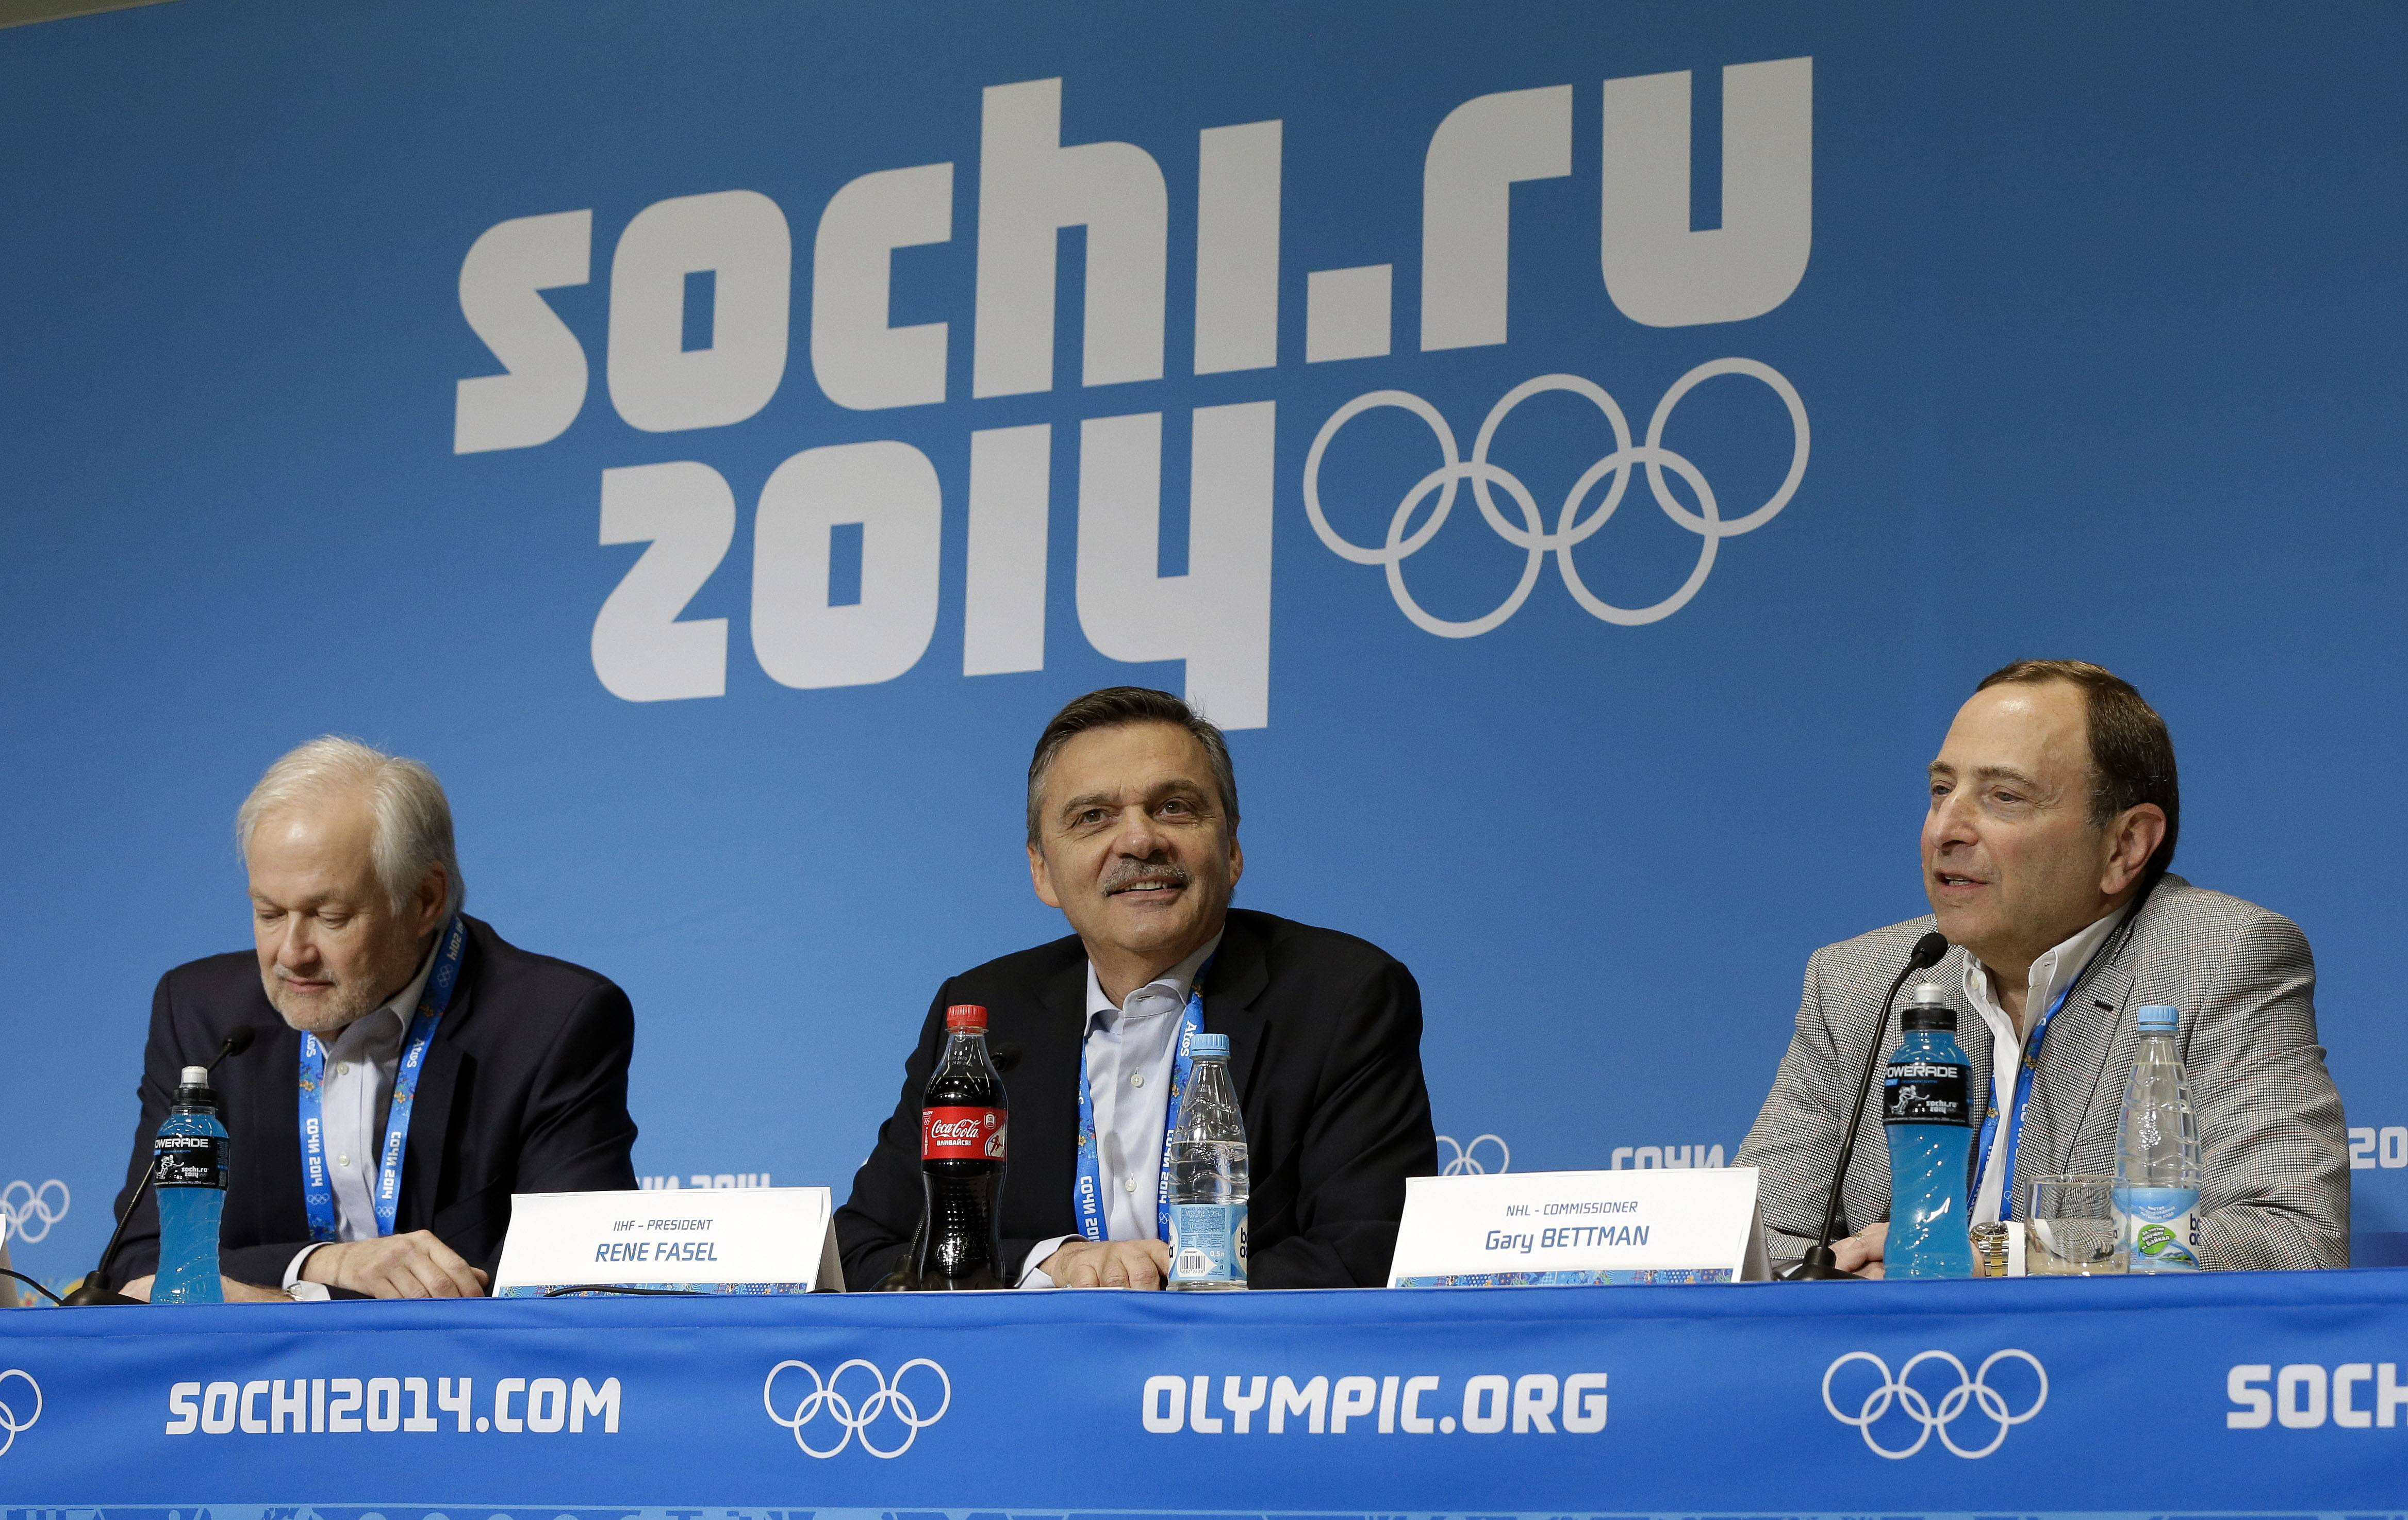 NHL Players' Association Executive Director Don Fehr, left, International Ice Hockey Federation President Rene Fasel, center, and NHL Commissioner Gary Bettman, right, answer questions at a news conference at the 2014 Winter Olympics, Tuesday, Feb. 18, 2014, in Sochi, Russia.